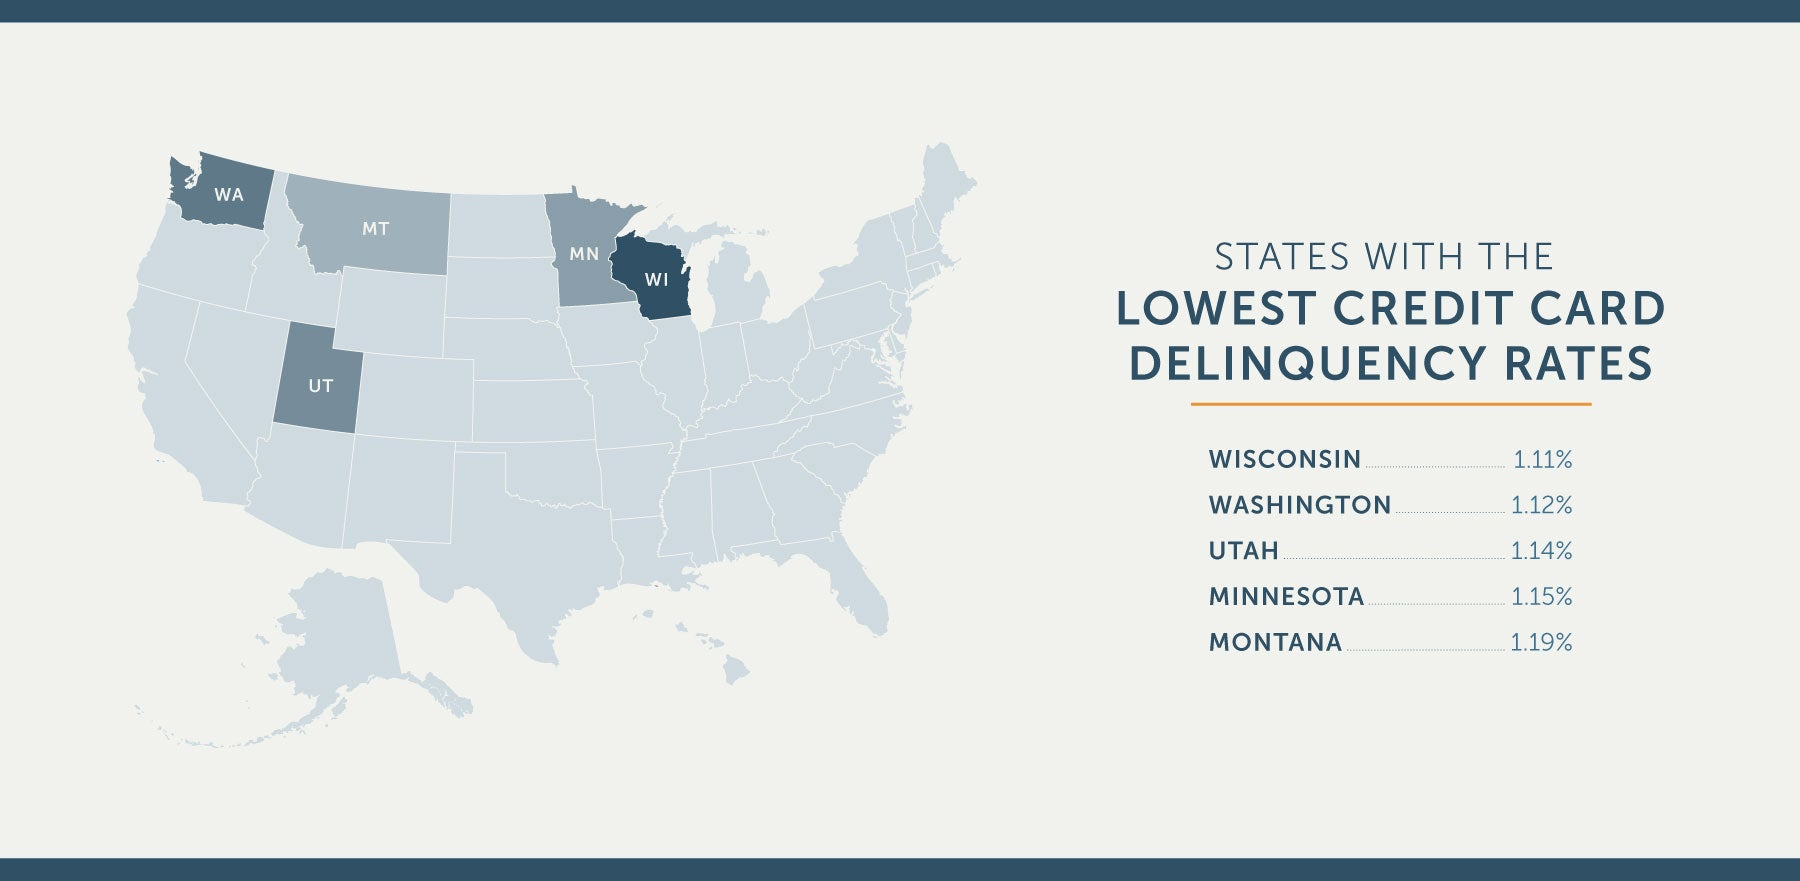 US states with lowest credit card delinquency rates